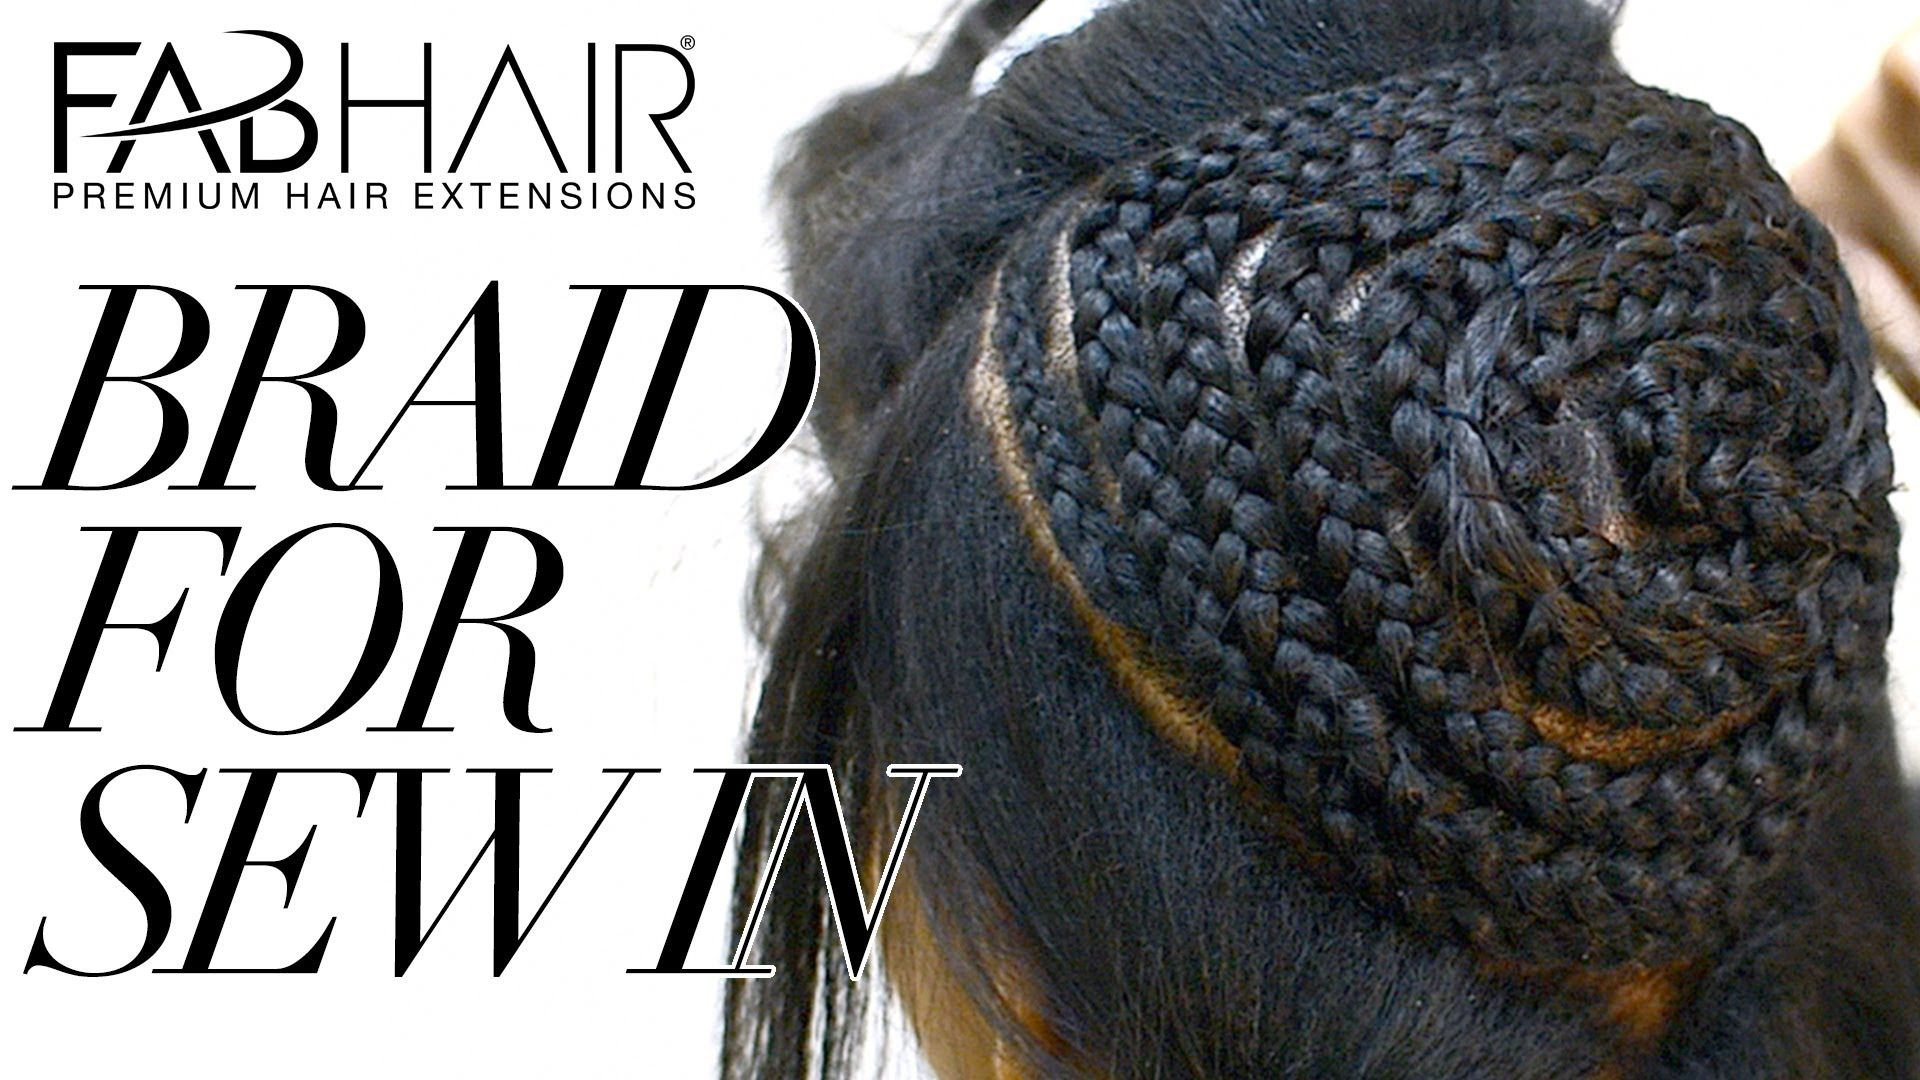 How to braid for sew in weave virgin brazilian hair extensions versatile sew in braid pattern jeuxipadfo Gallery